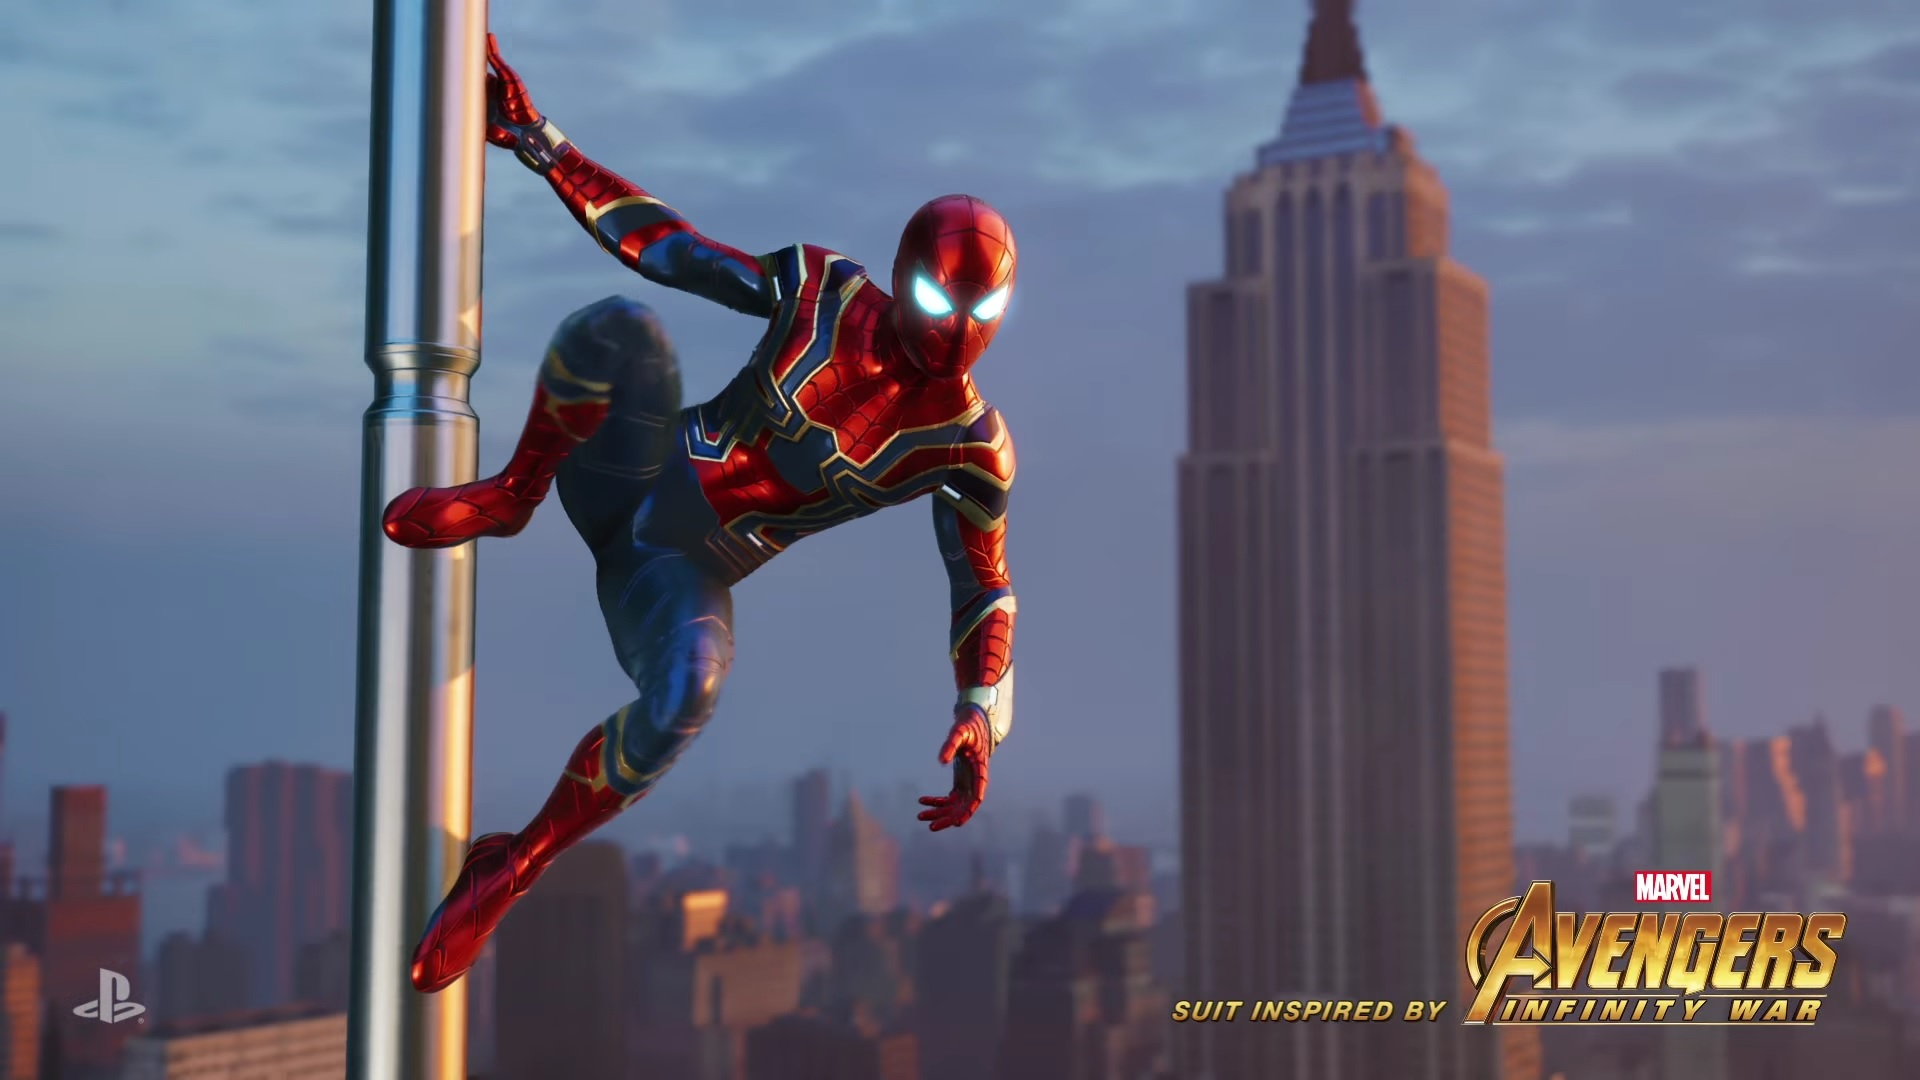 Spider-Man gets a pre-order 'Iron Spider Suit' and 'Spidey Suit Pack' screenshot